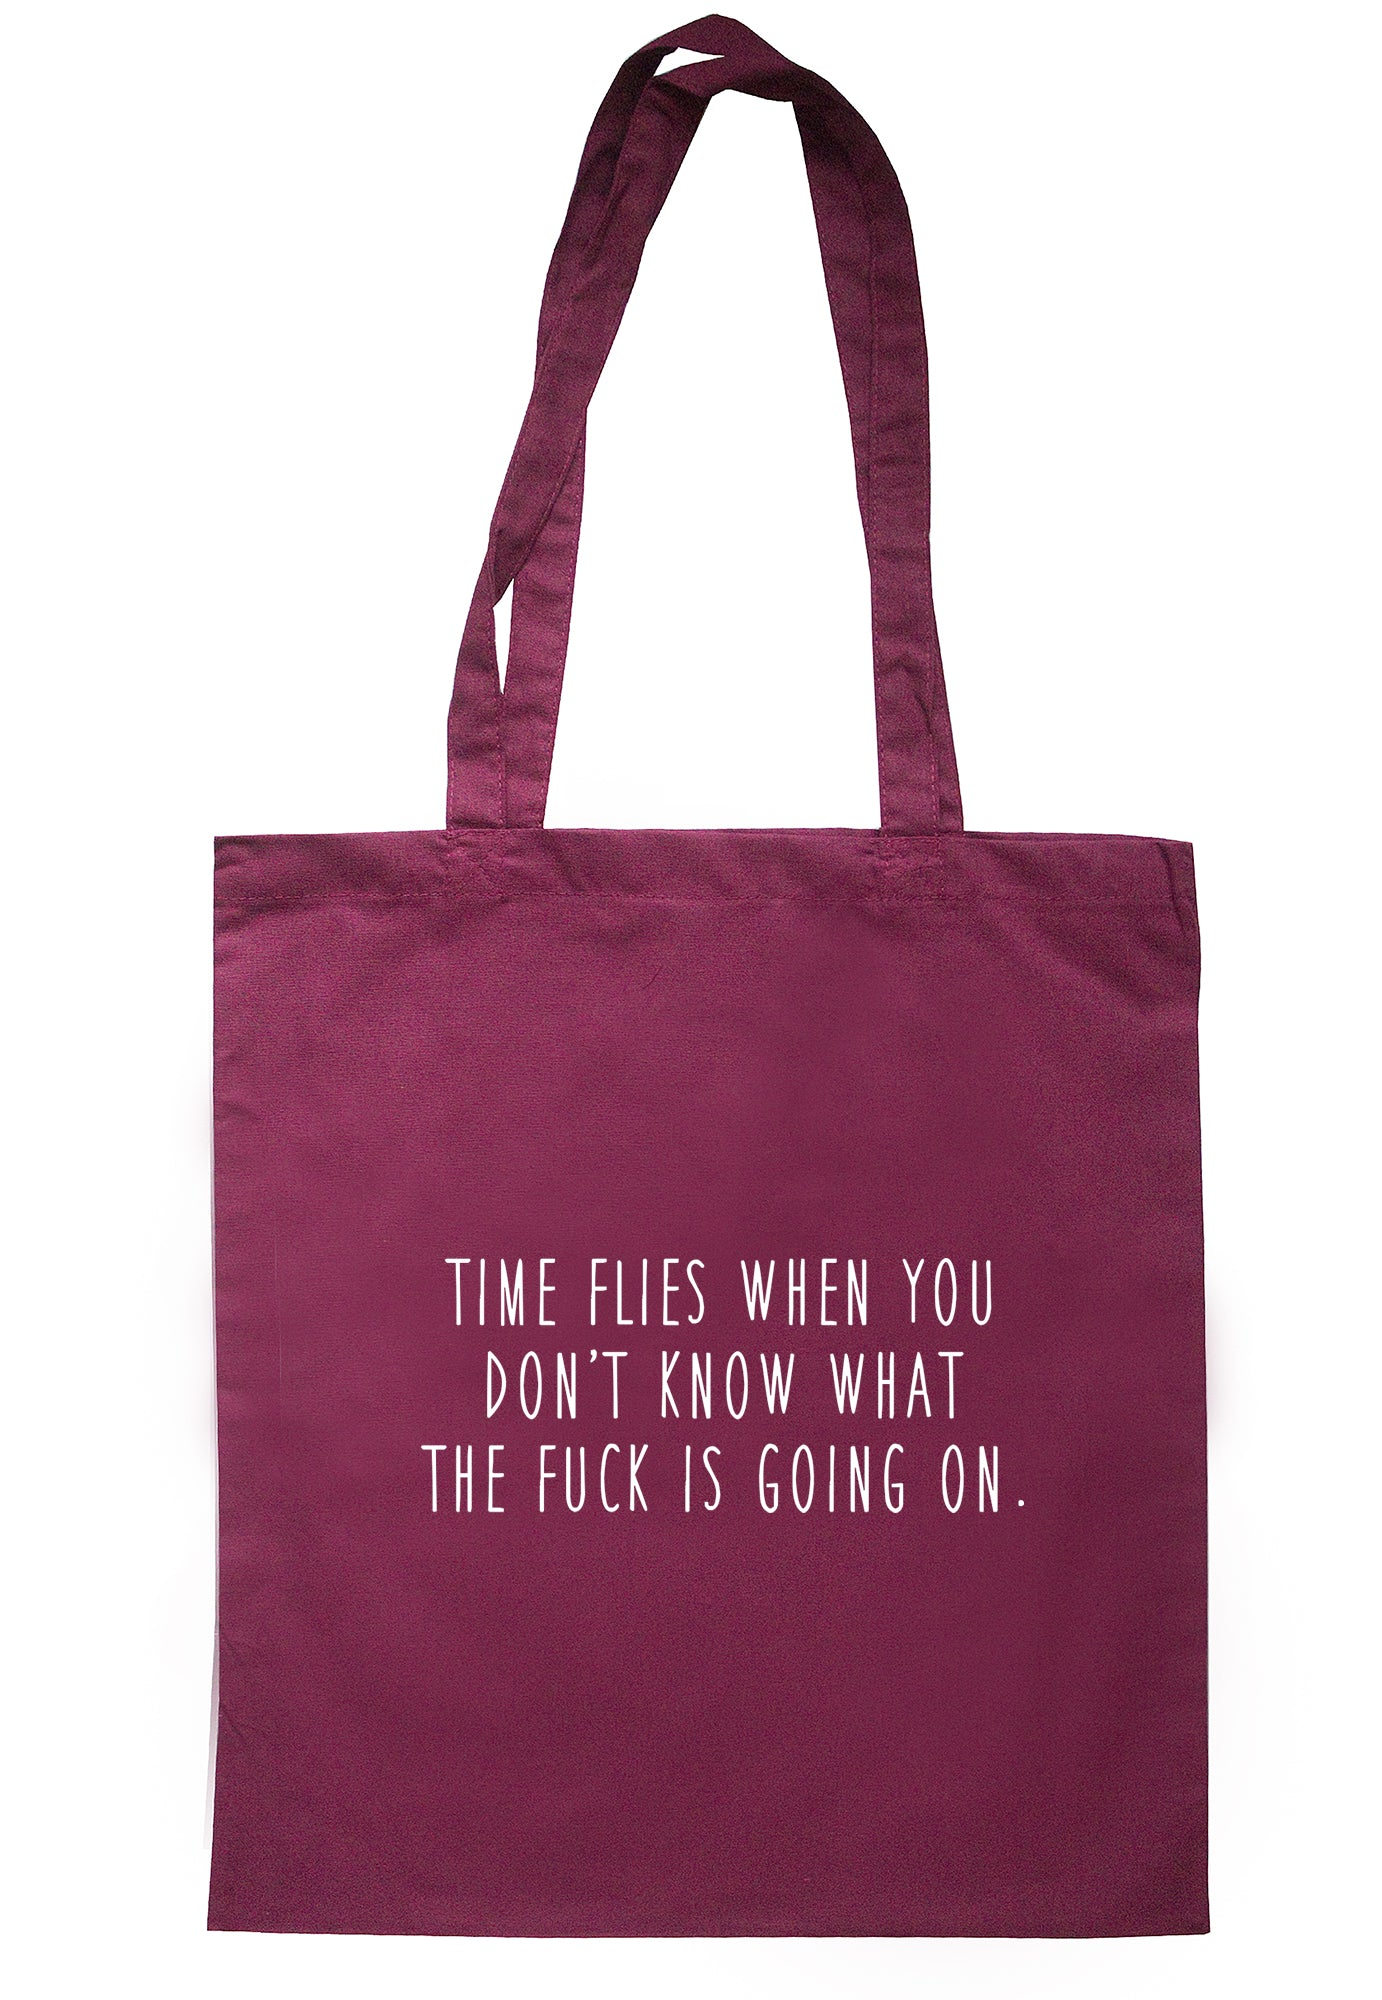 Time Flies When You Don't Know What The Fuck Is Going On Tote Bag S1135 - Illustrated Identity Ltd.